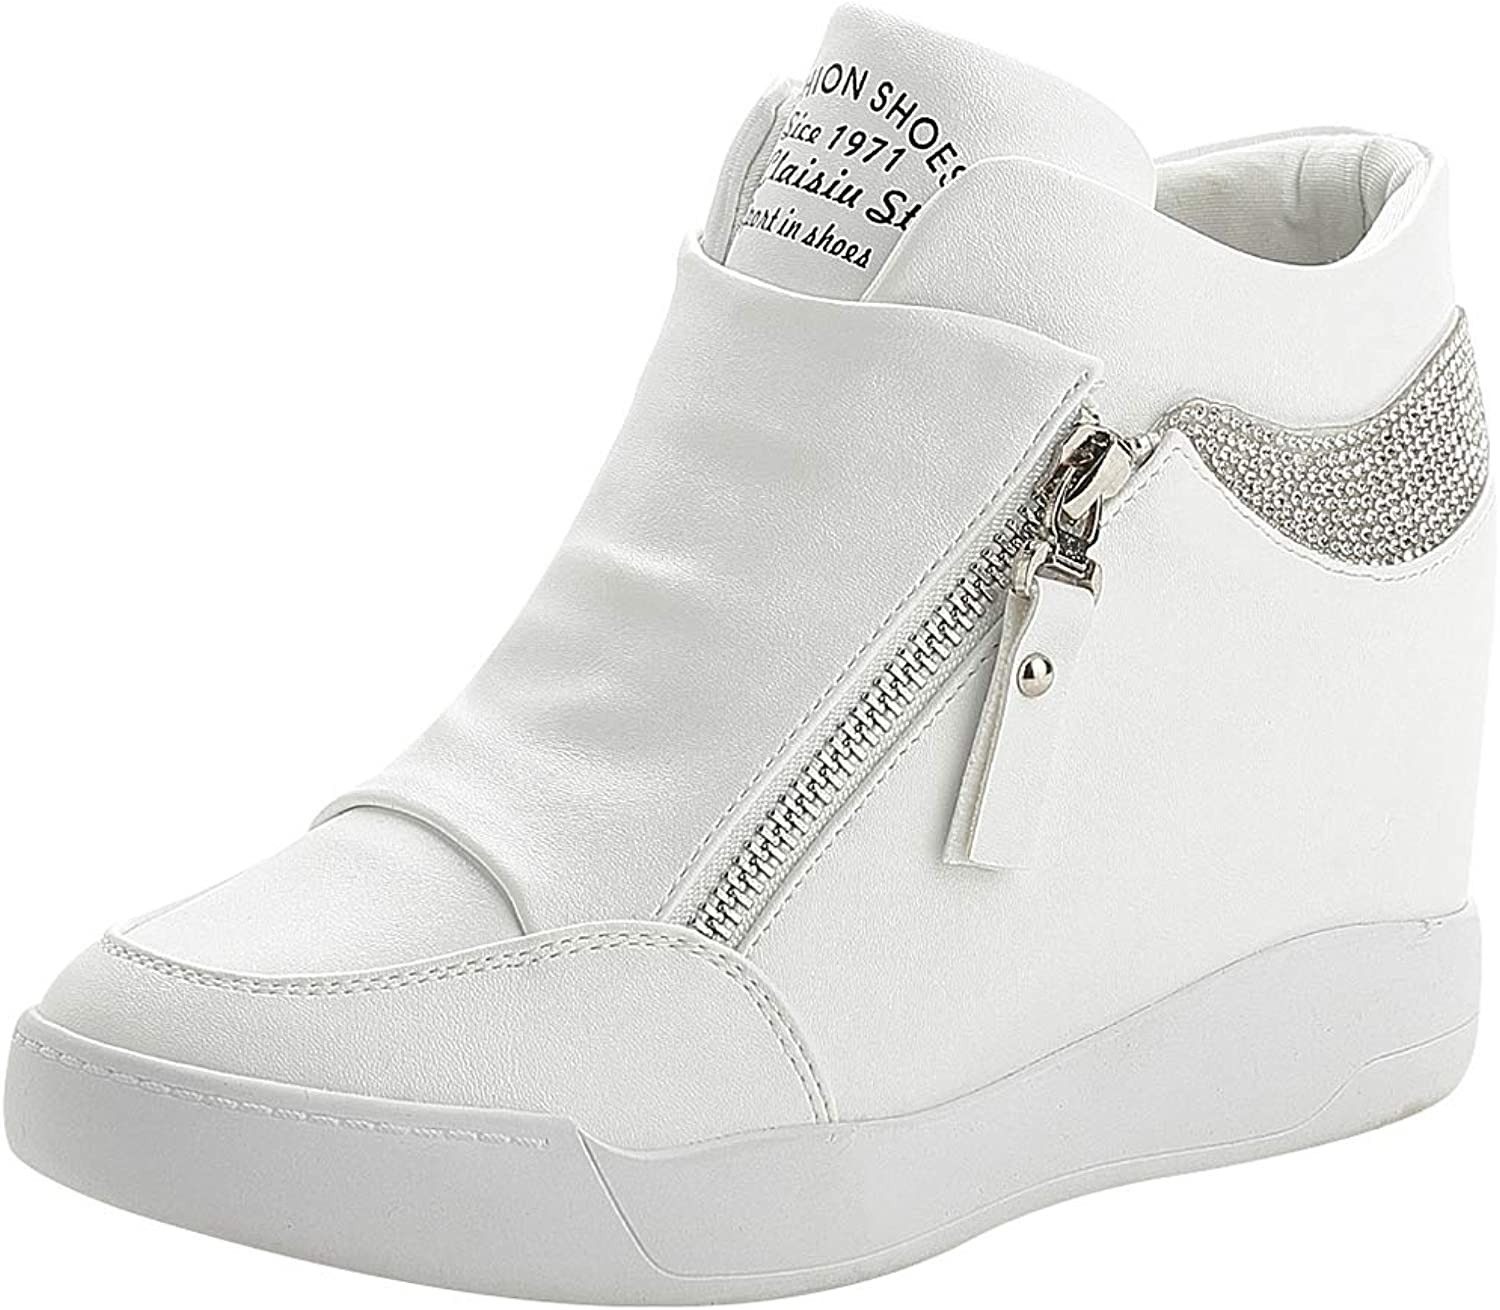 Rismart Women's Wedge Platform Bootie Fashion Sneakers